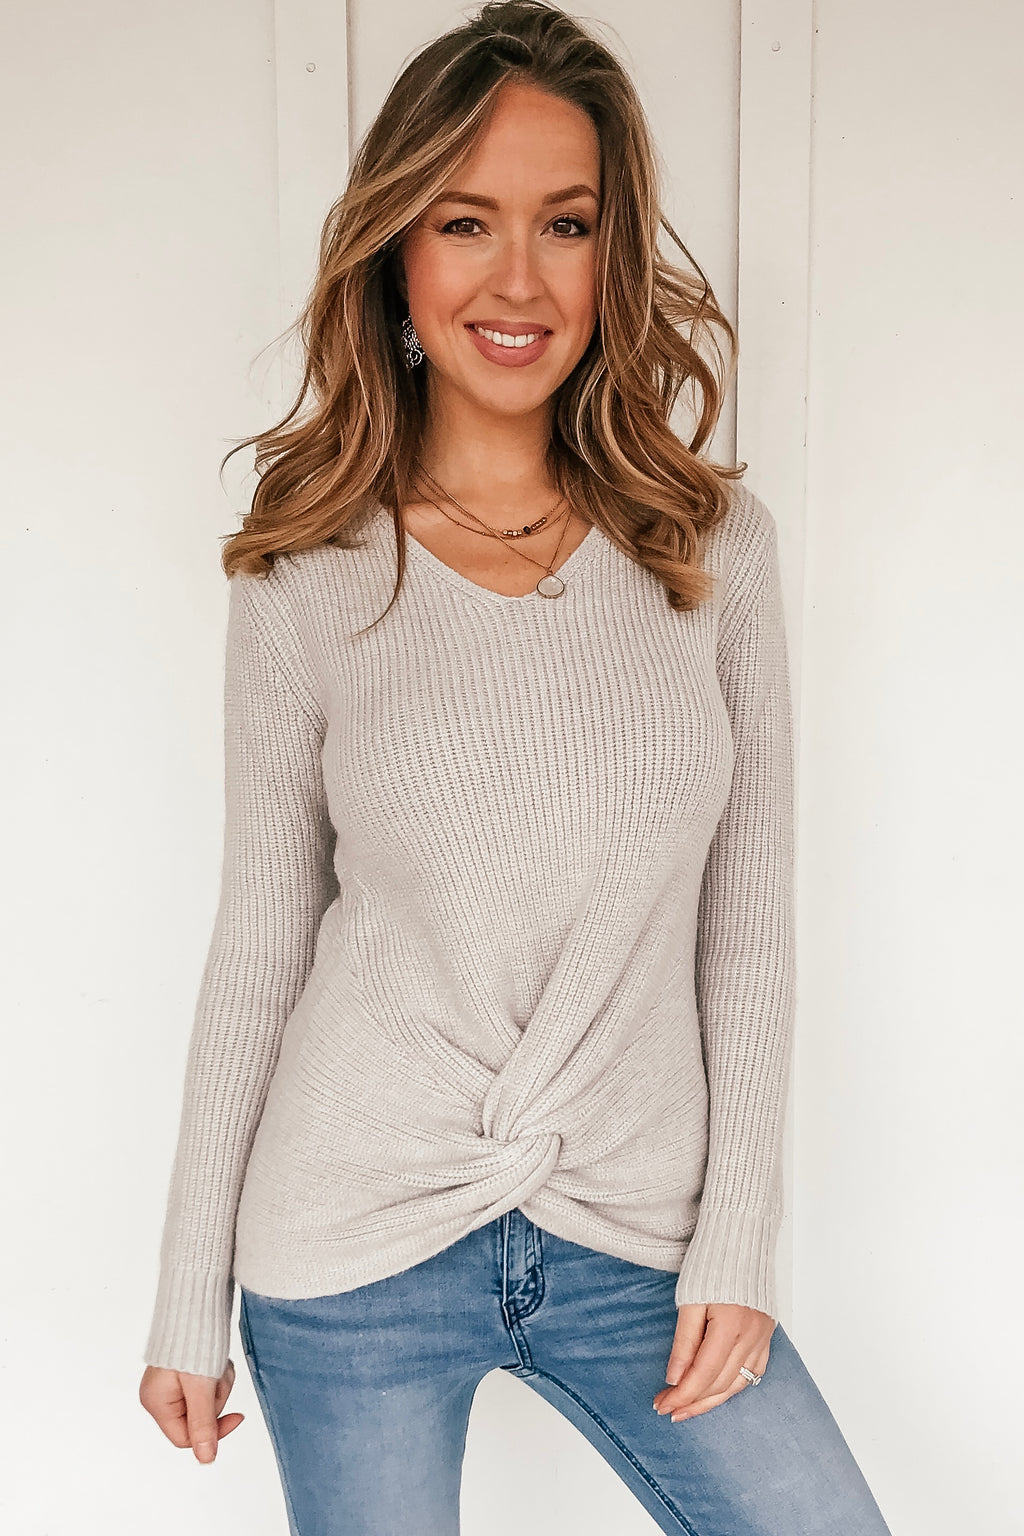 Twisted In Love Knot Sweater